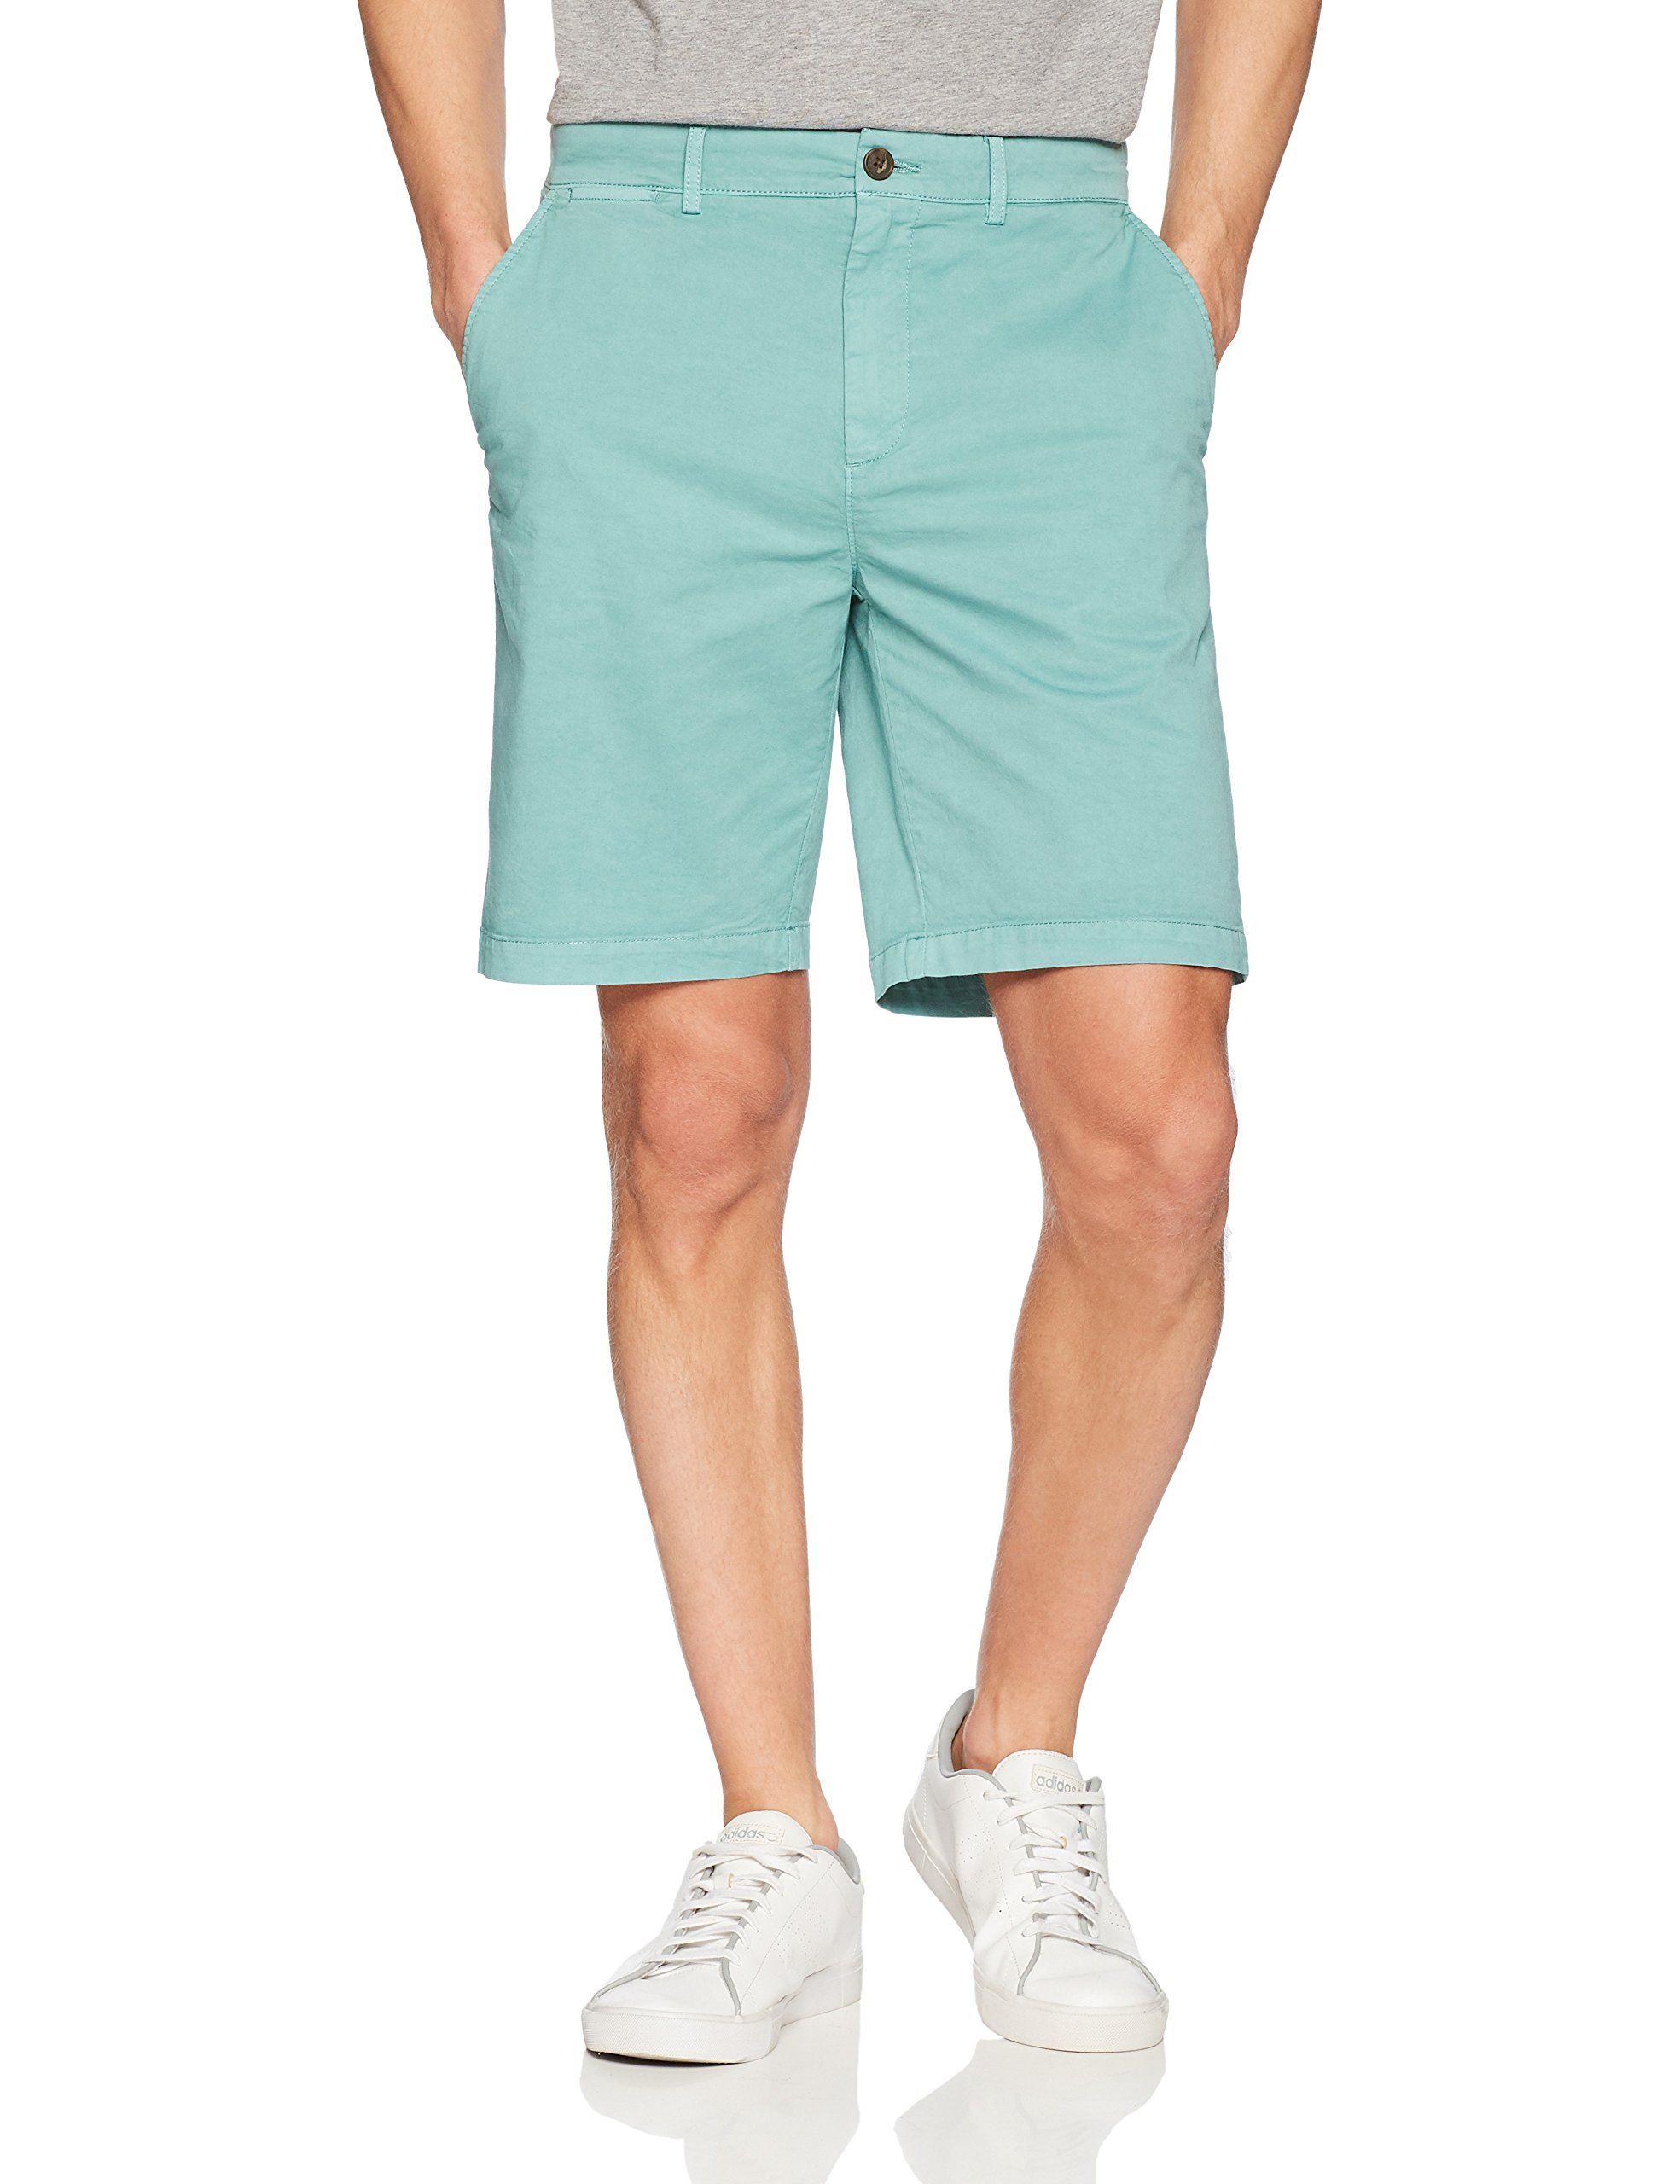 Goodthreads Men's 9'' Inseam Flat-Front Stretch Chino Shorts, Aquifer, 34 by Goodthreads